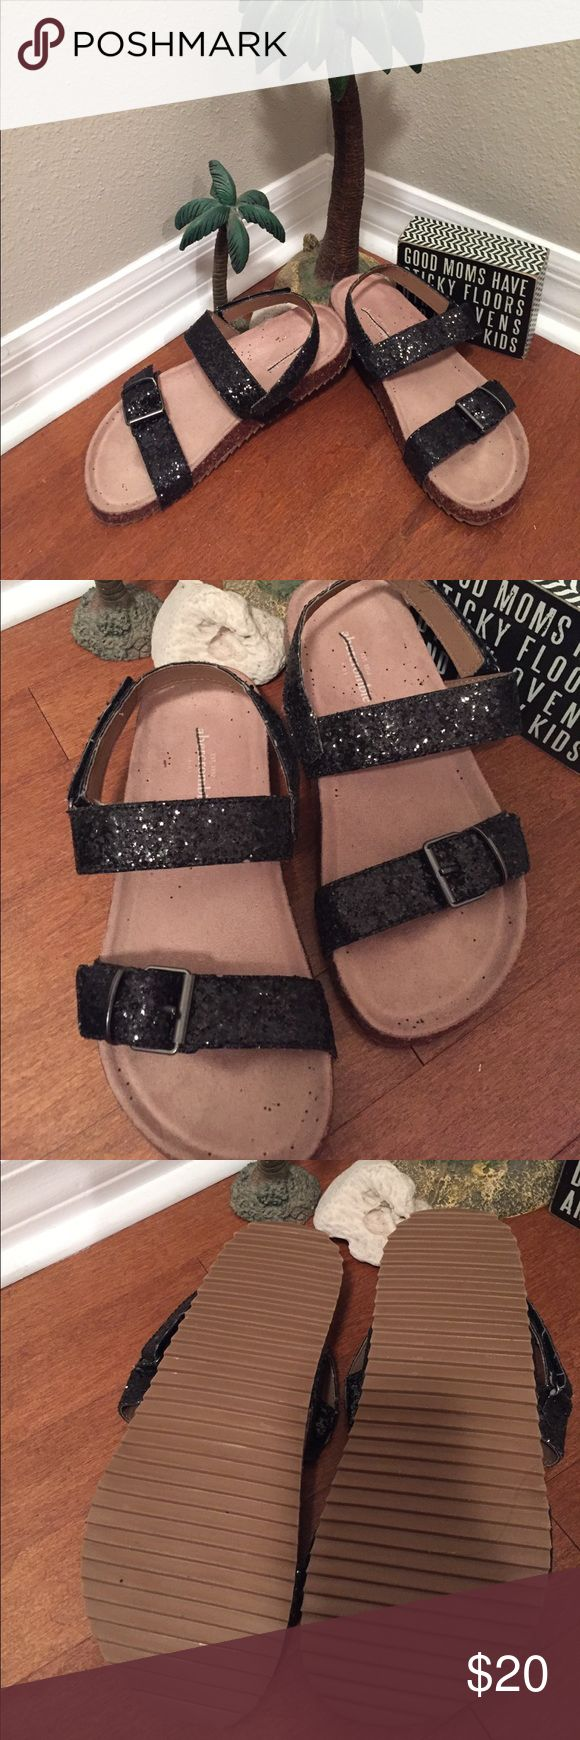 Abercrombie Glitter Strappy Sandals These are so cute and sparkly. They are brand new from Marshalls store, wo tags. They say Abercrombie kids on inner sole, but when purchased the tag said women's size 6.5. So possibly a kids 5?? They fasten at the side with Velcro strap and have adjustable buckle on top. Never worn. So cute💕🦋 Abercrombie & Fitch Shoes Sandals